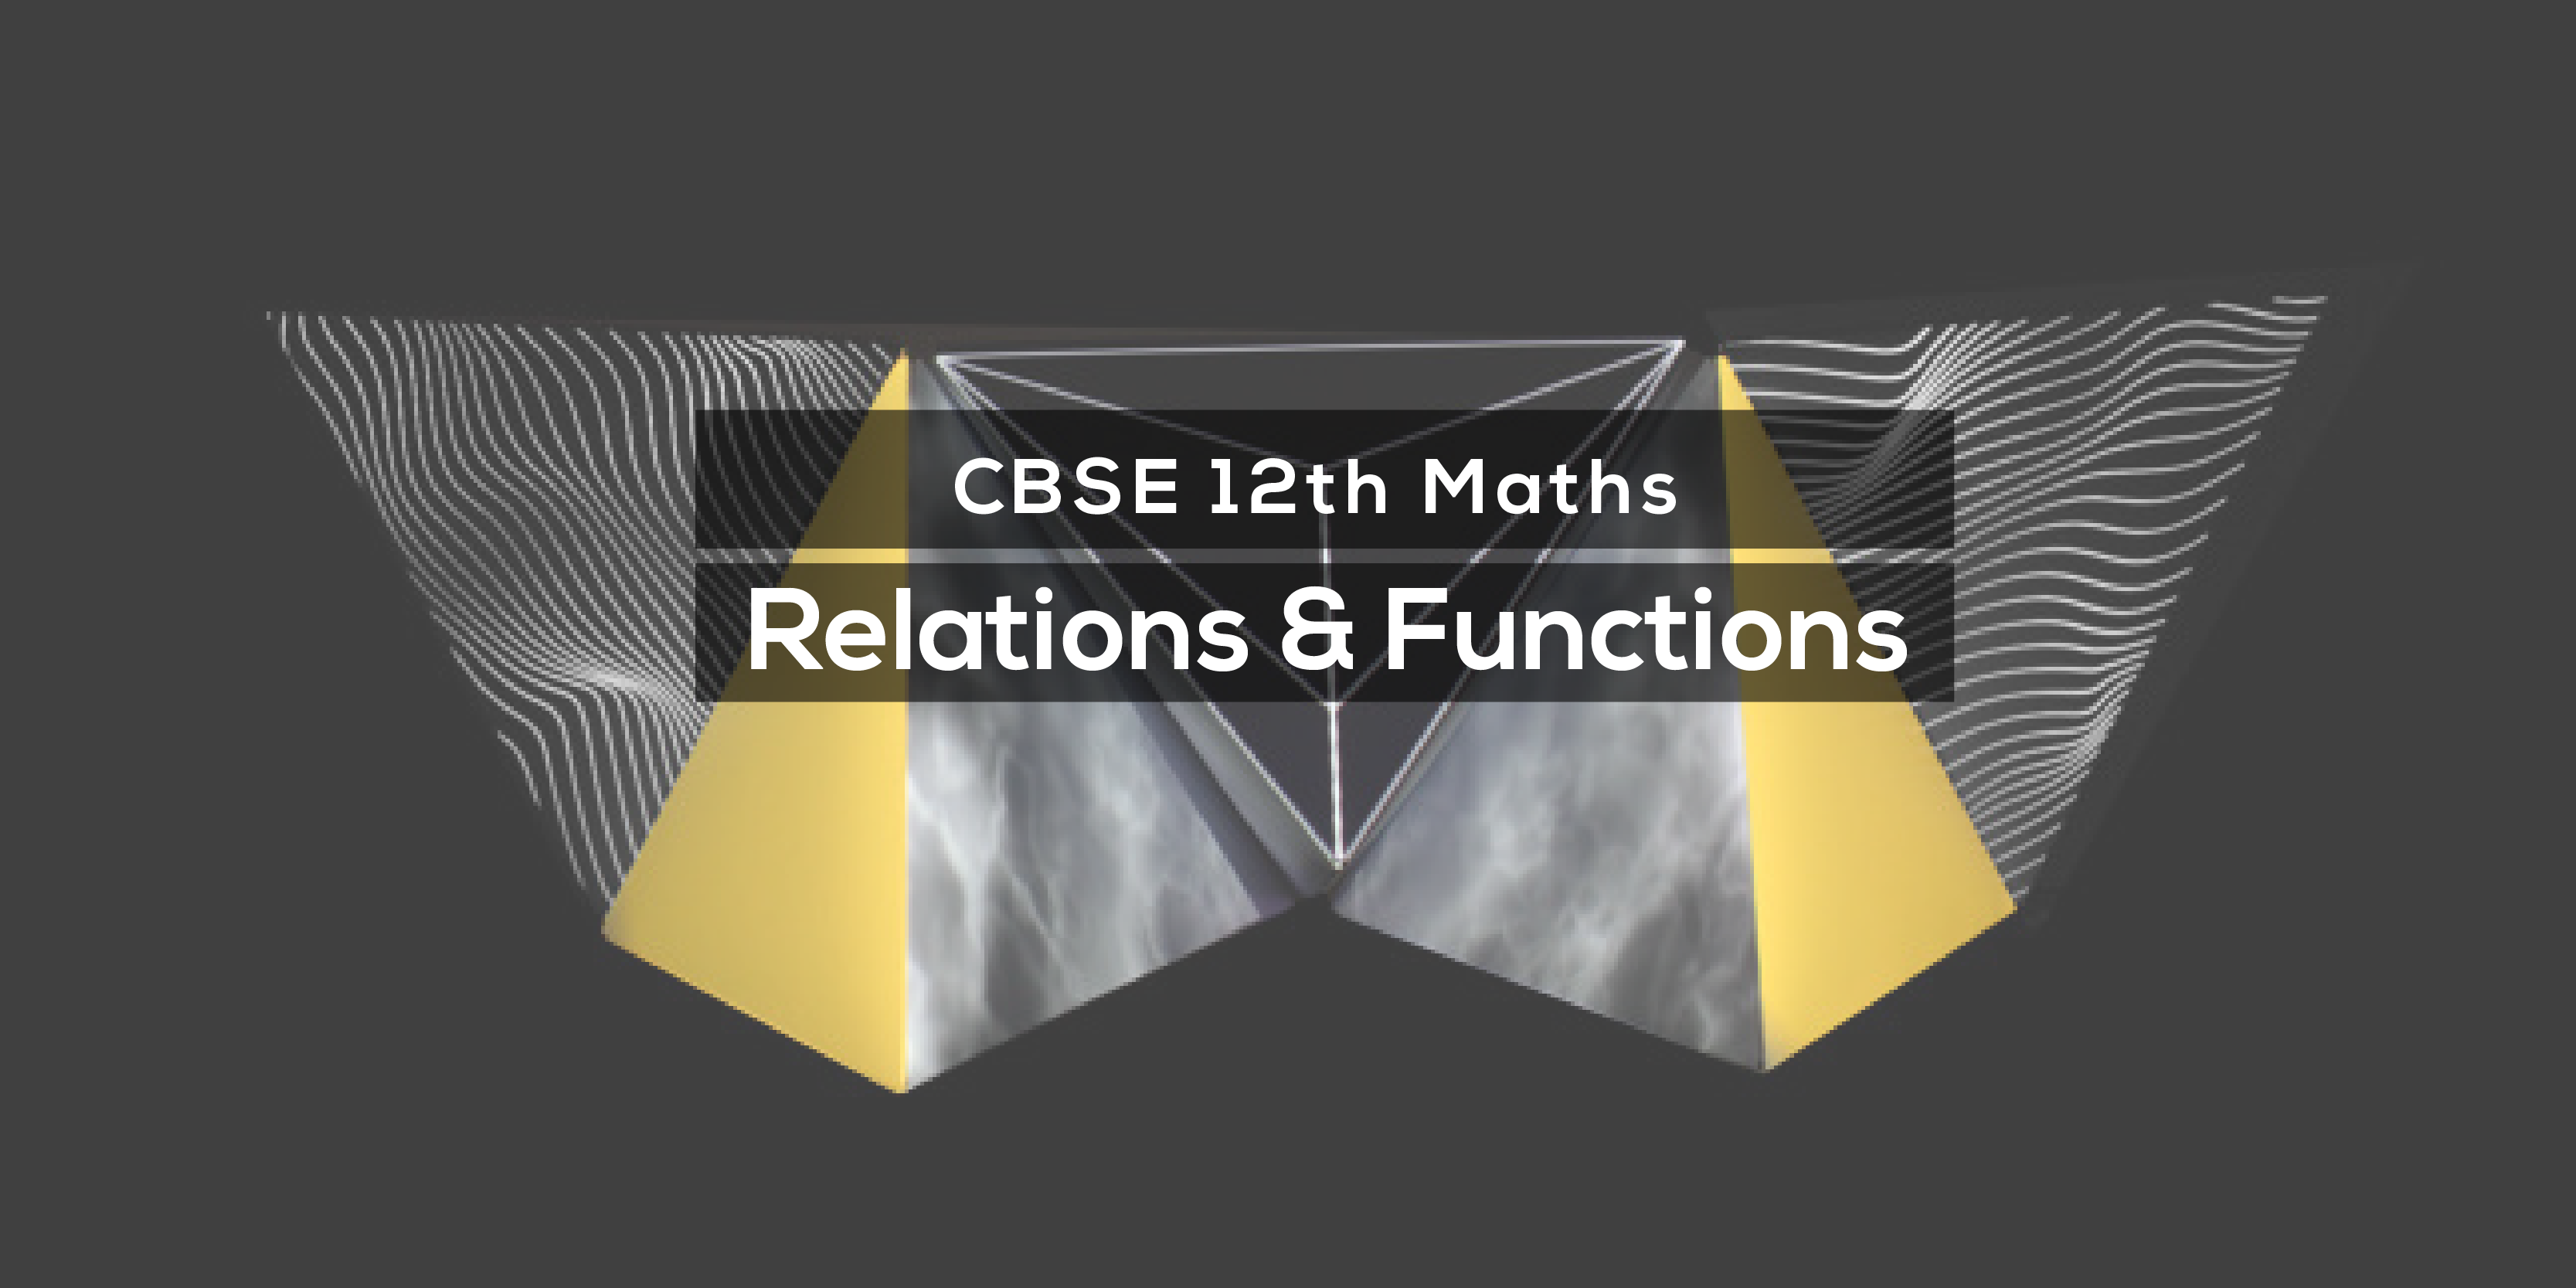 Relations & Functions